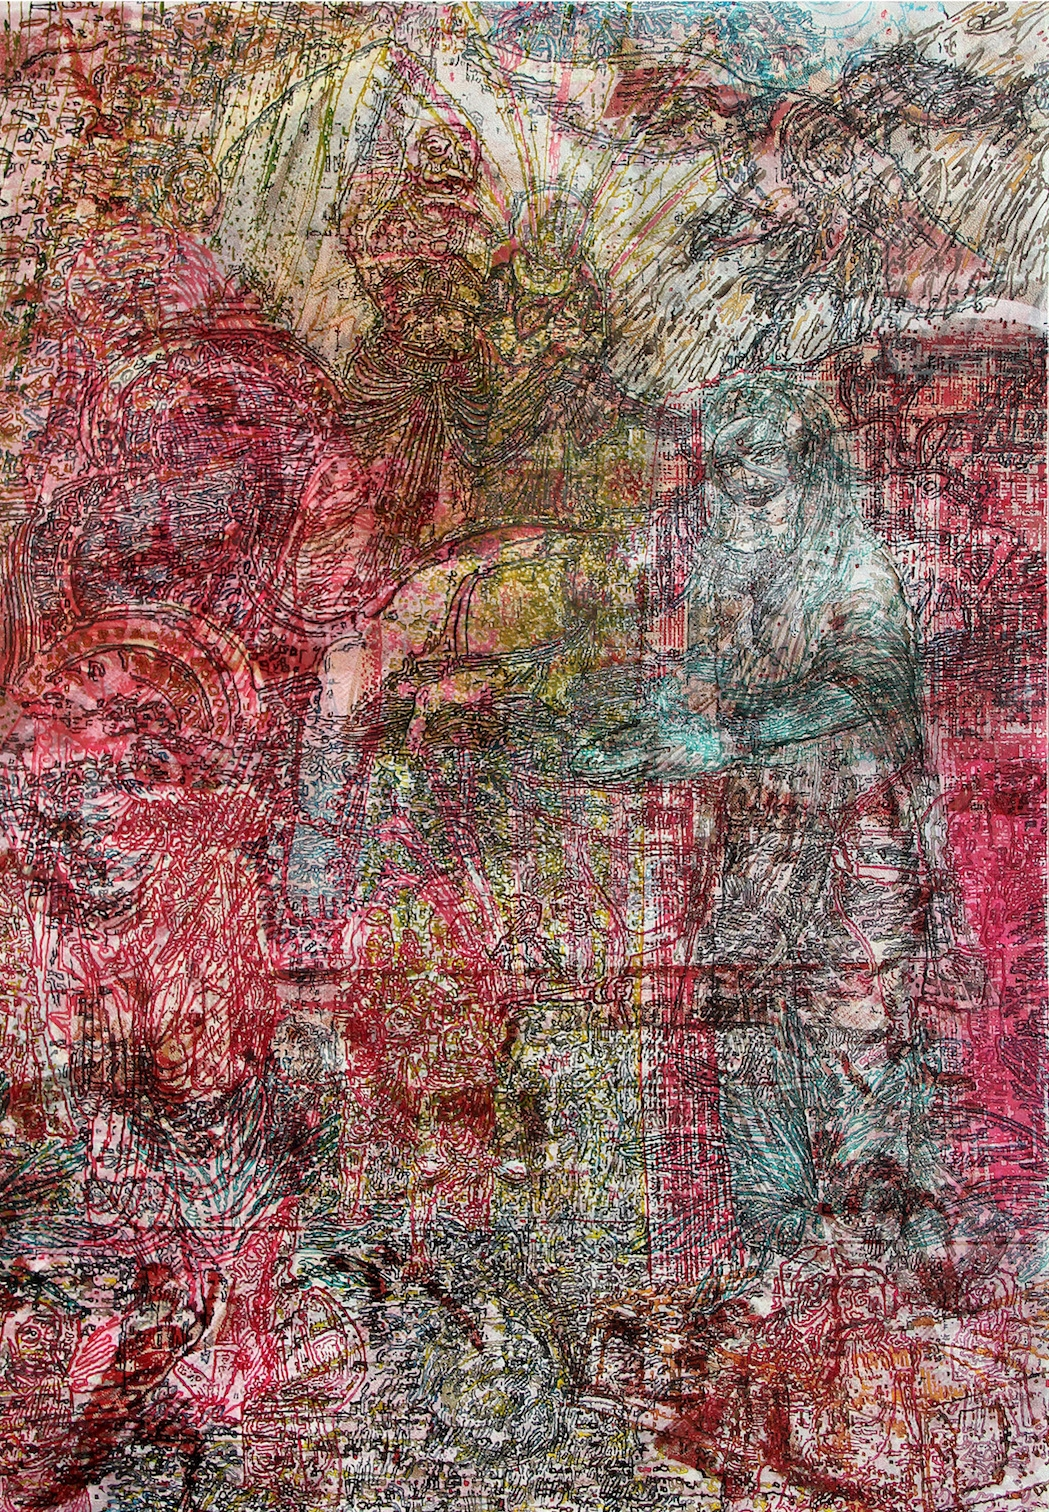 V. Ramesh, 'Saavadhan', 2016, oil on canvas, 5 x 7 in. Image courtesy Gallery Threshold.